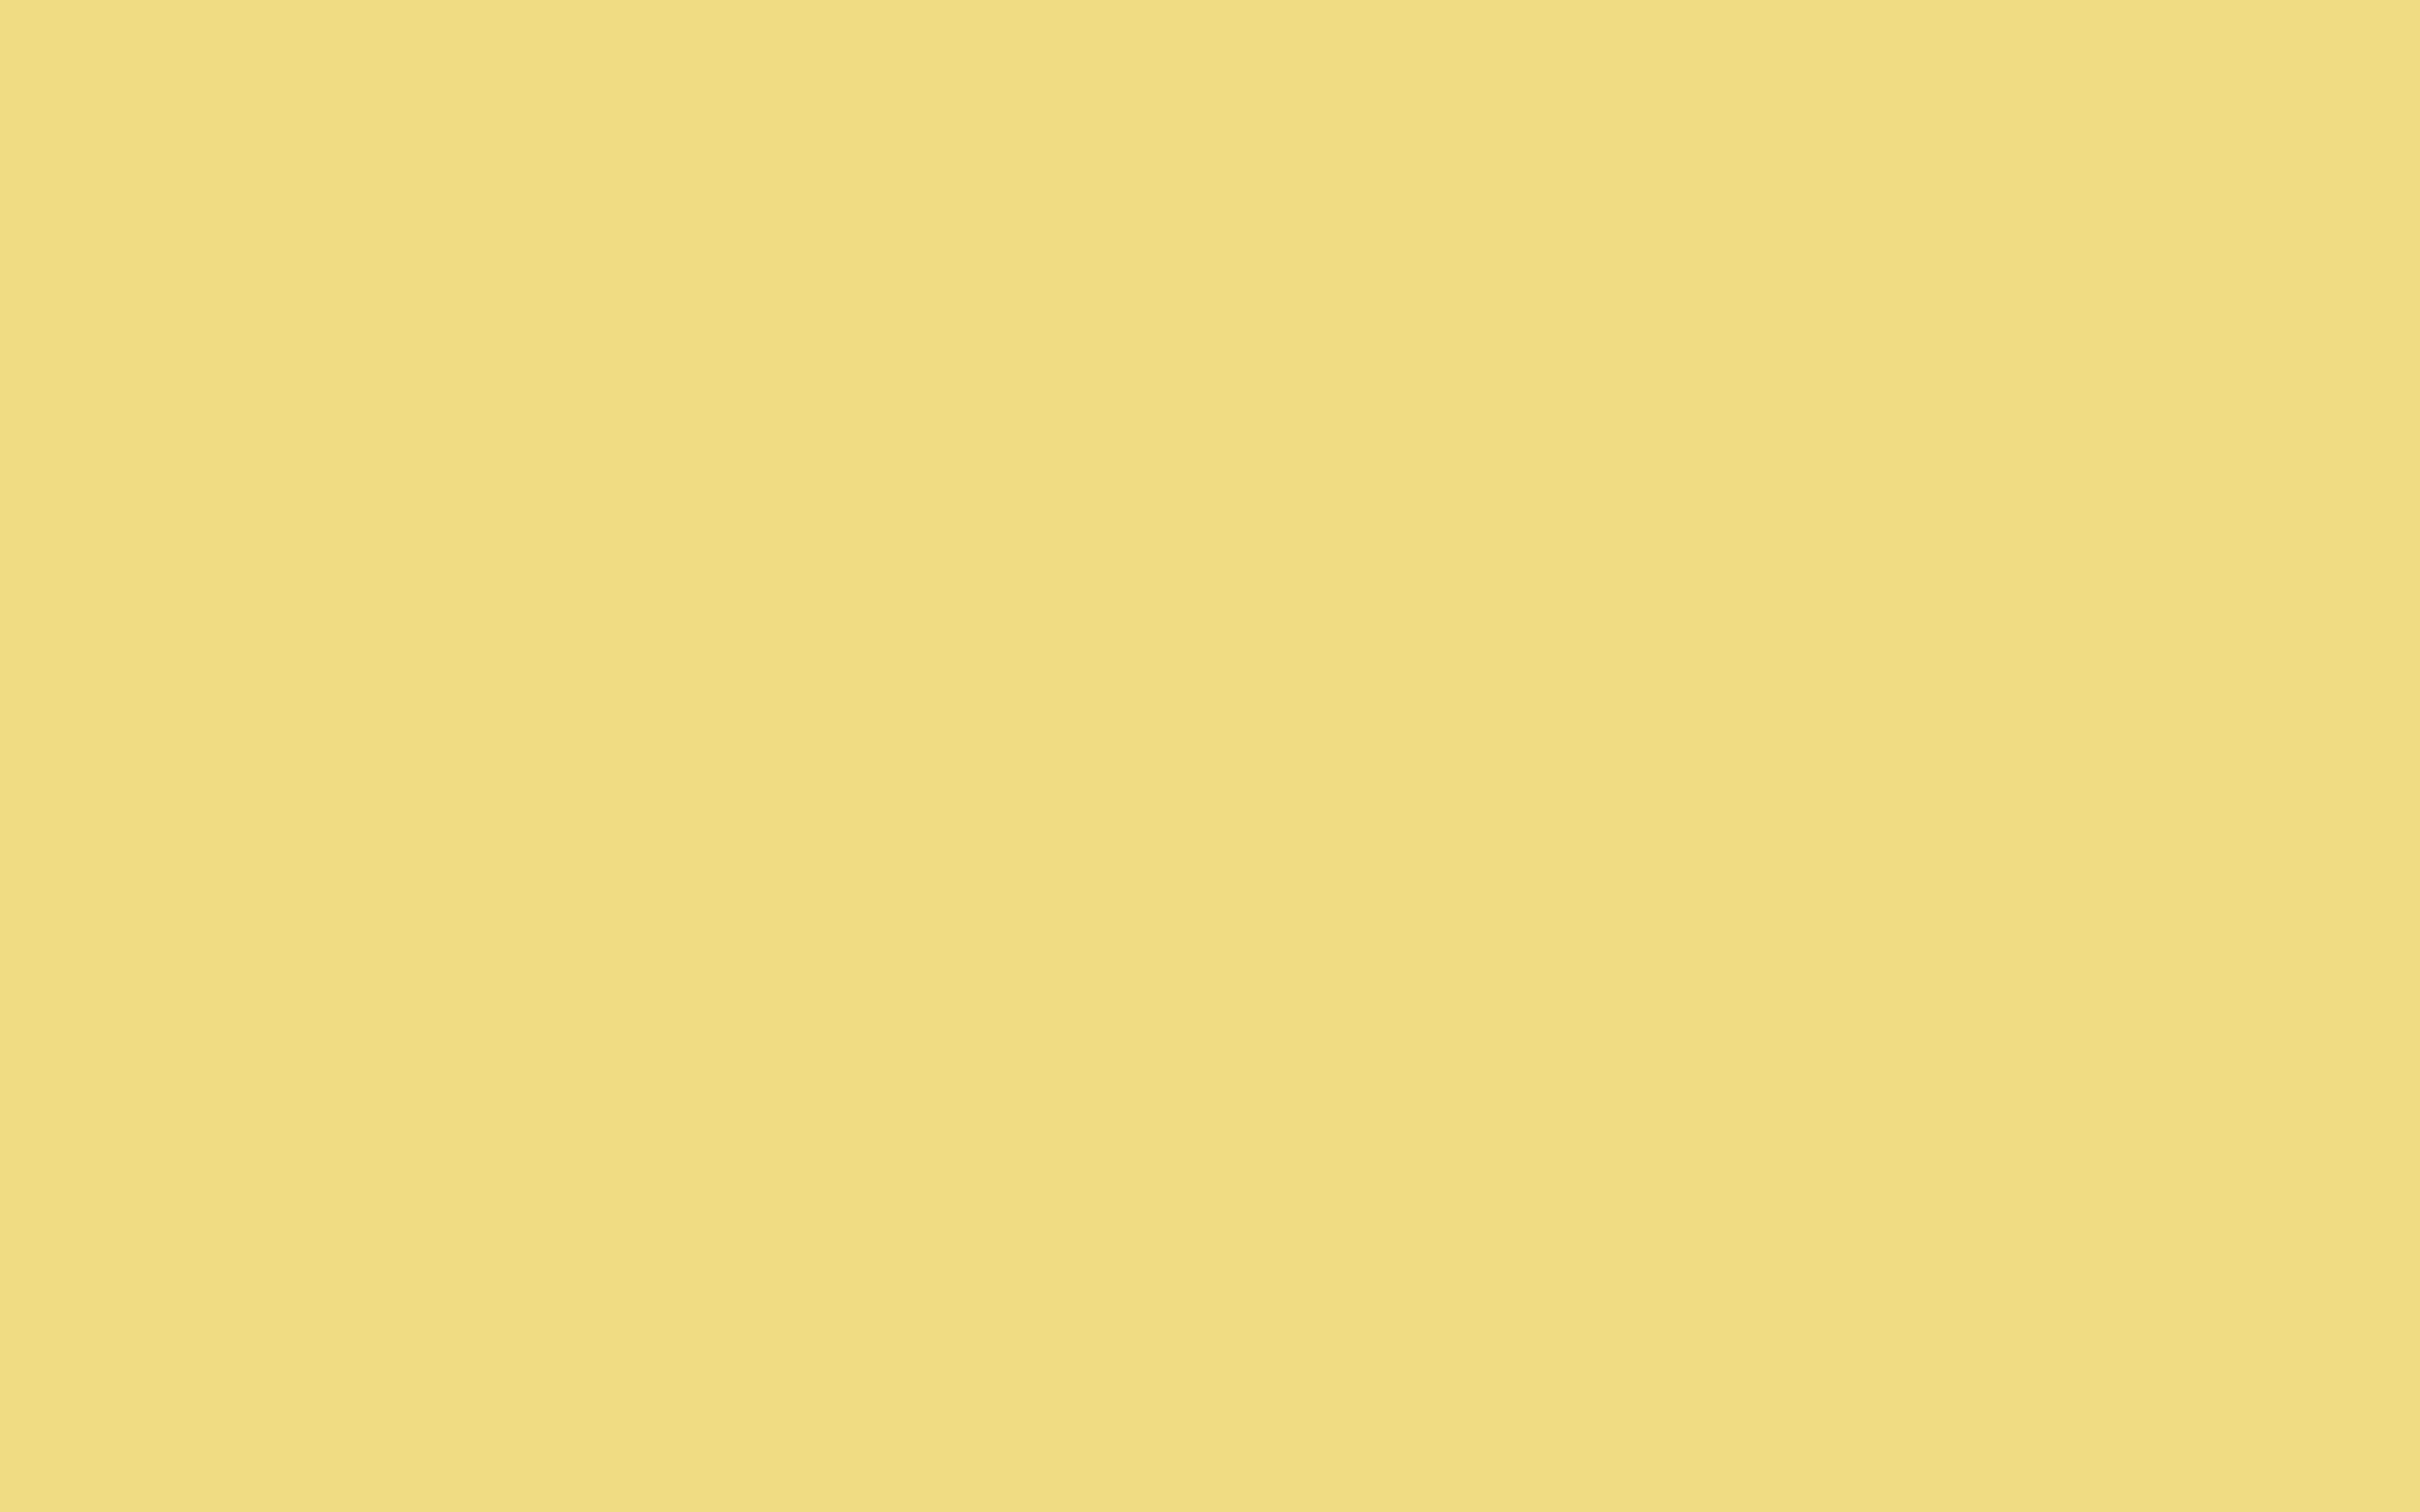 2880x1800 Buff Solid Color Background